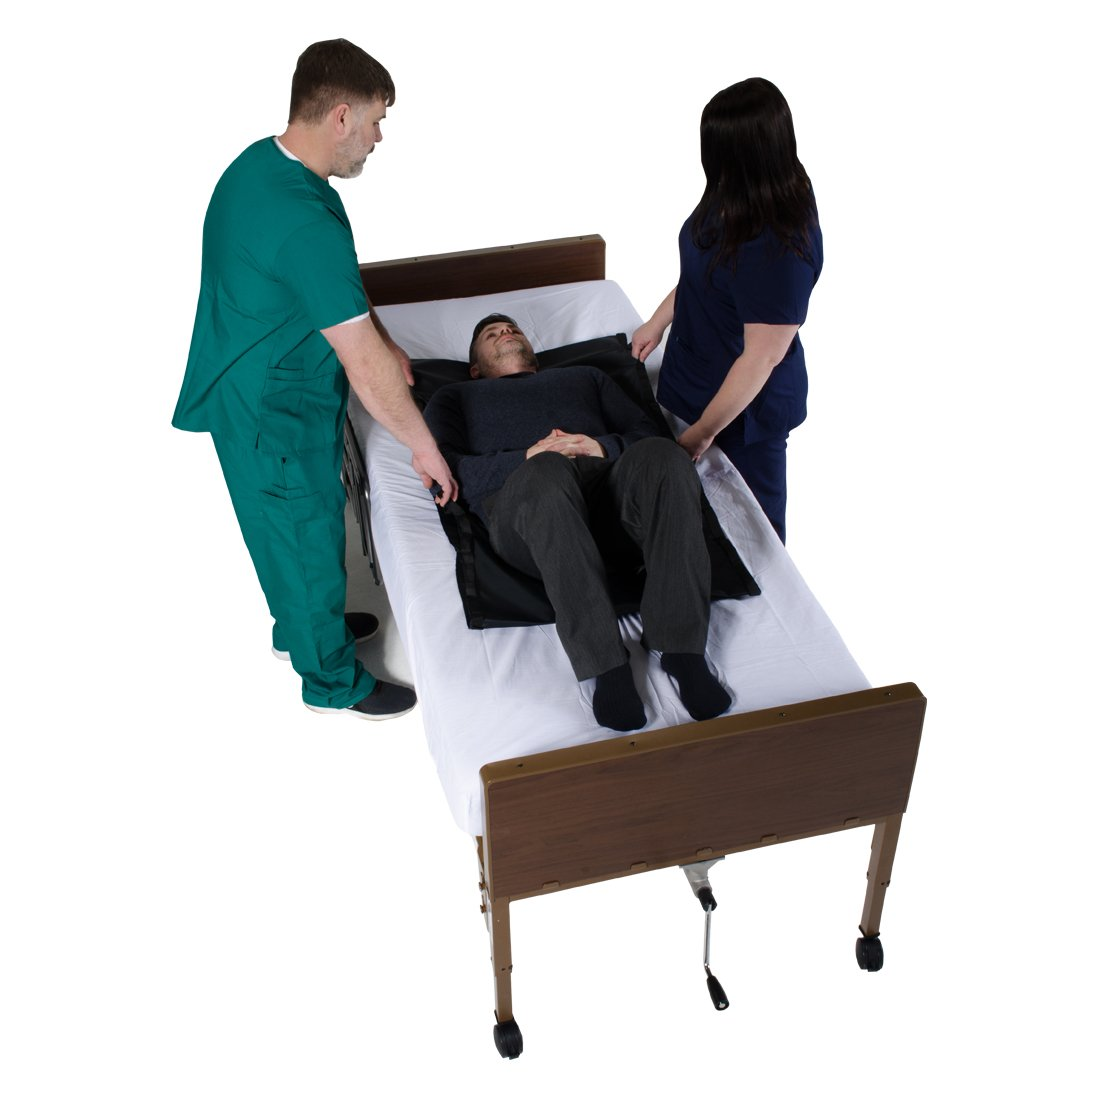 Tubular Reusable Slide Sheet with Handles for Patient Transfers, Turning, and Repositioning In Beds, Hospitals and Home Care, Sliding Draw Sheets to Assist Moving Elderly and Disabled (48''L x 28''W)